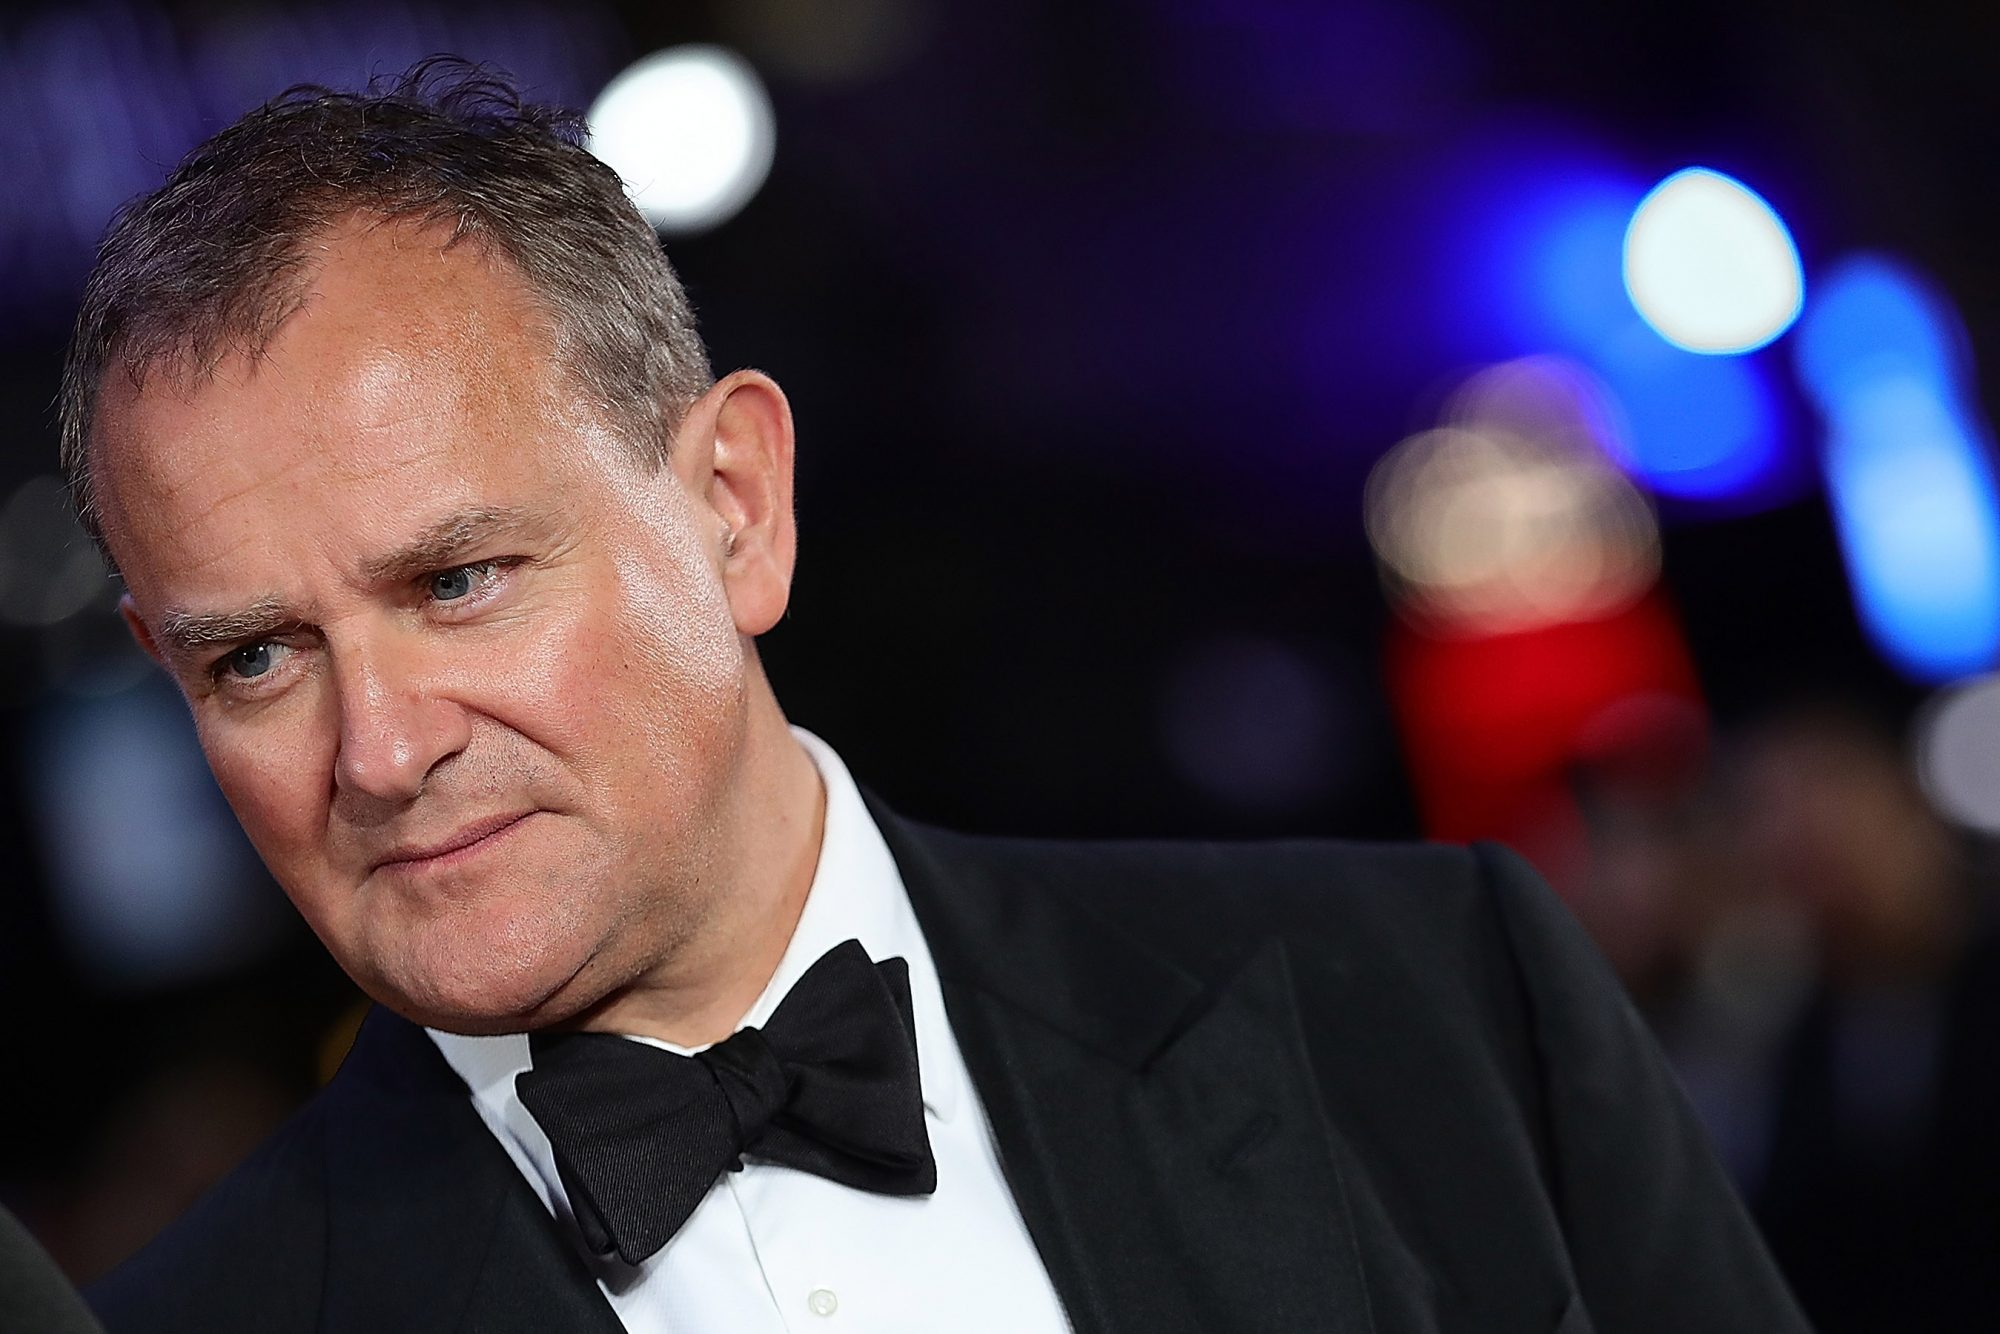 Downton Abbey's Hugh Bonneville To Star in Netflix Live-Action Holiday Musical